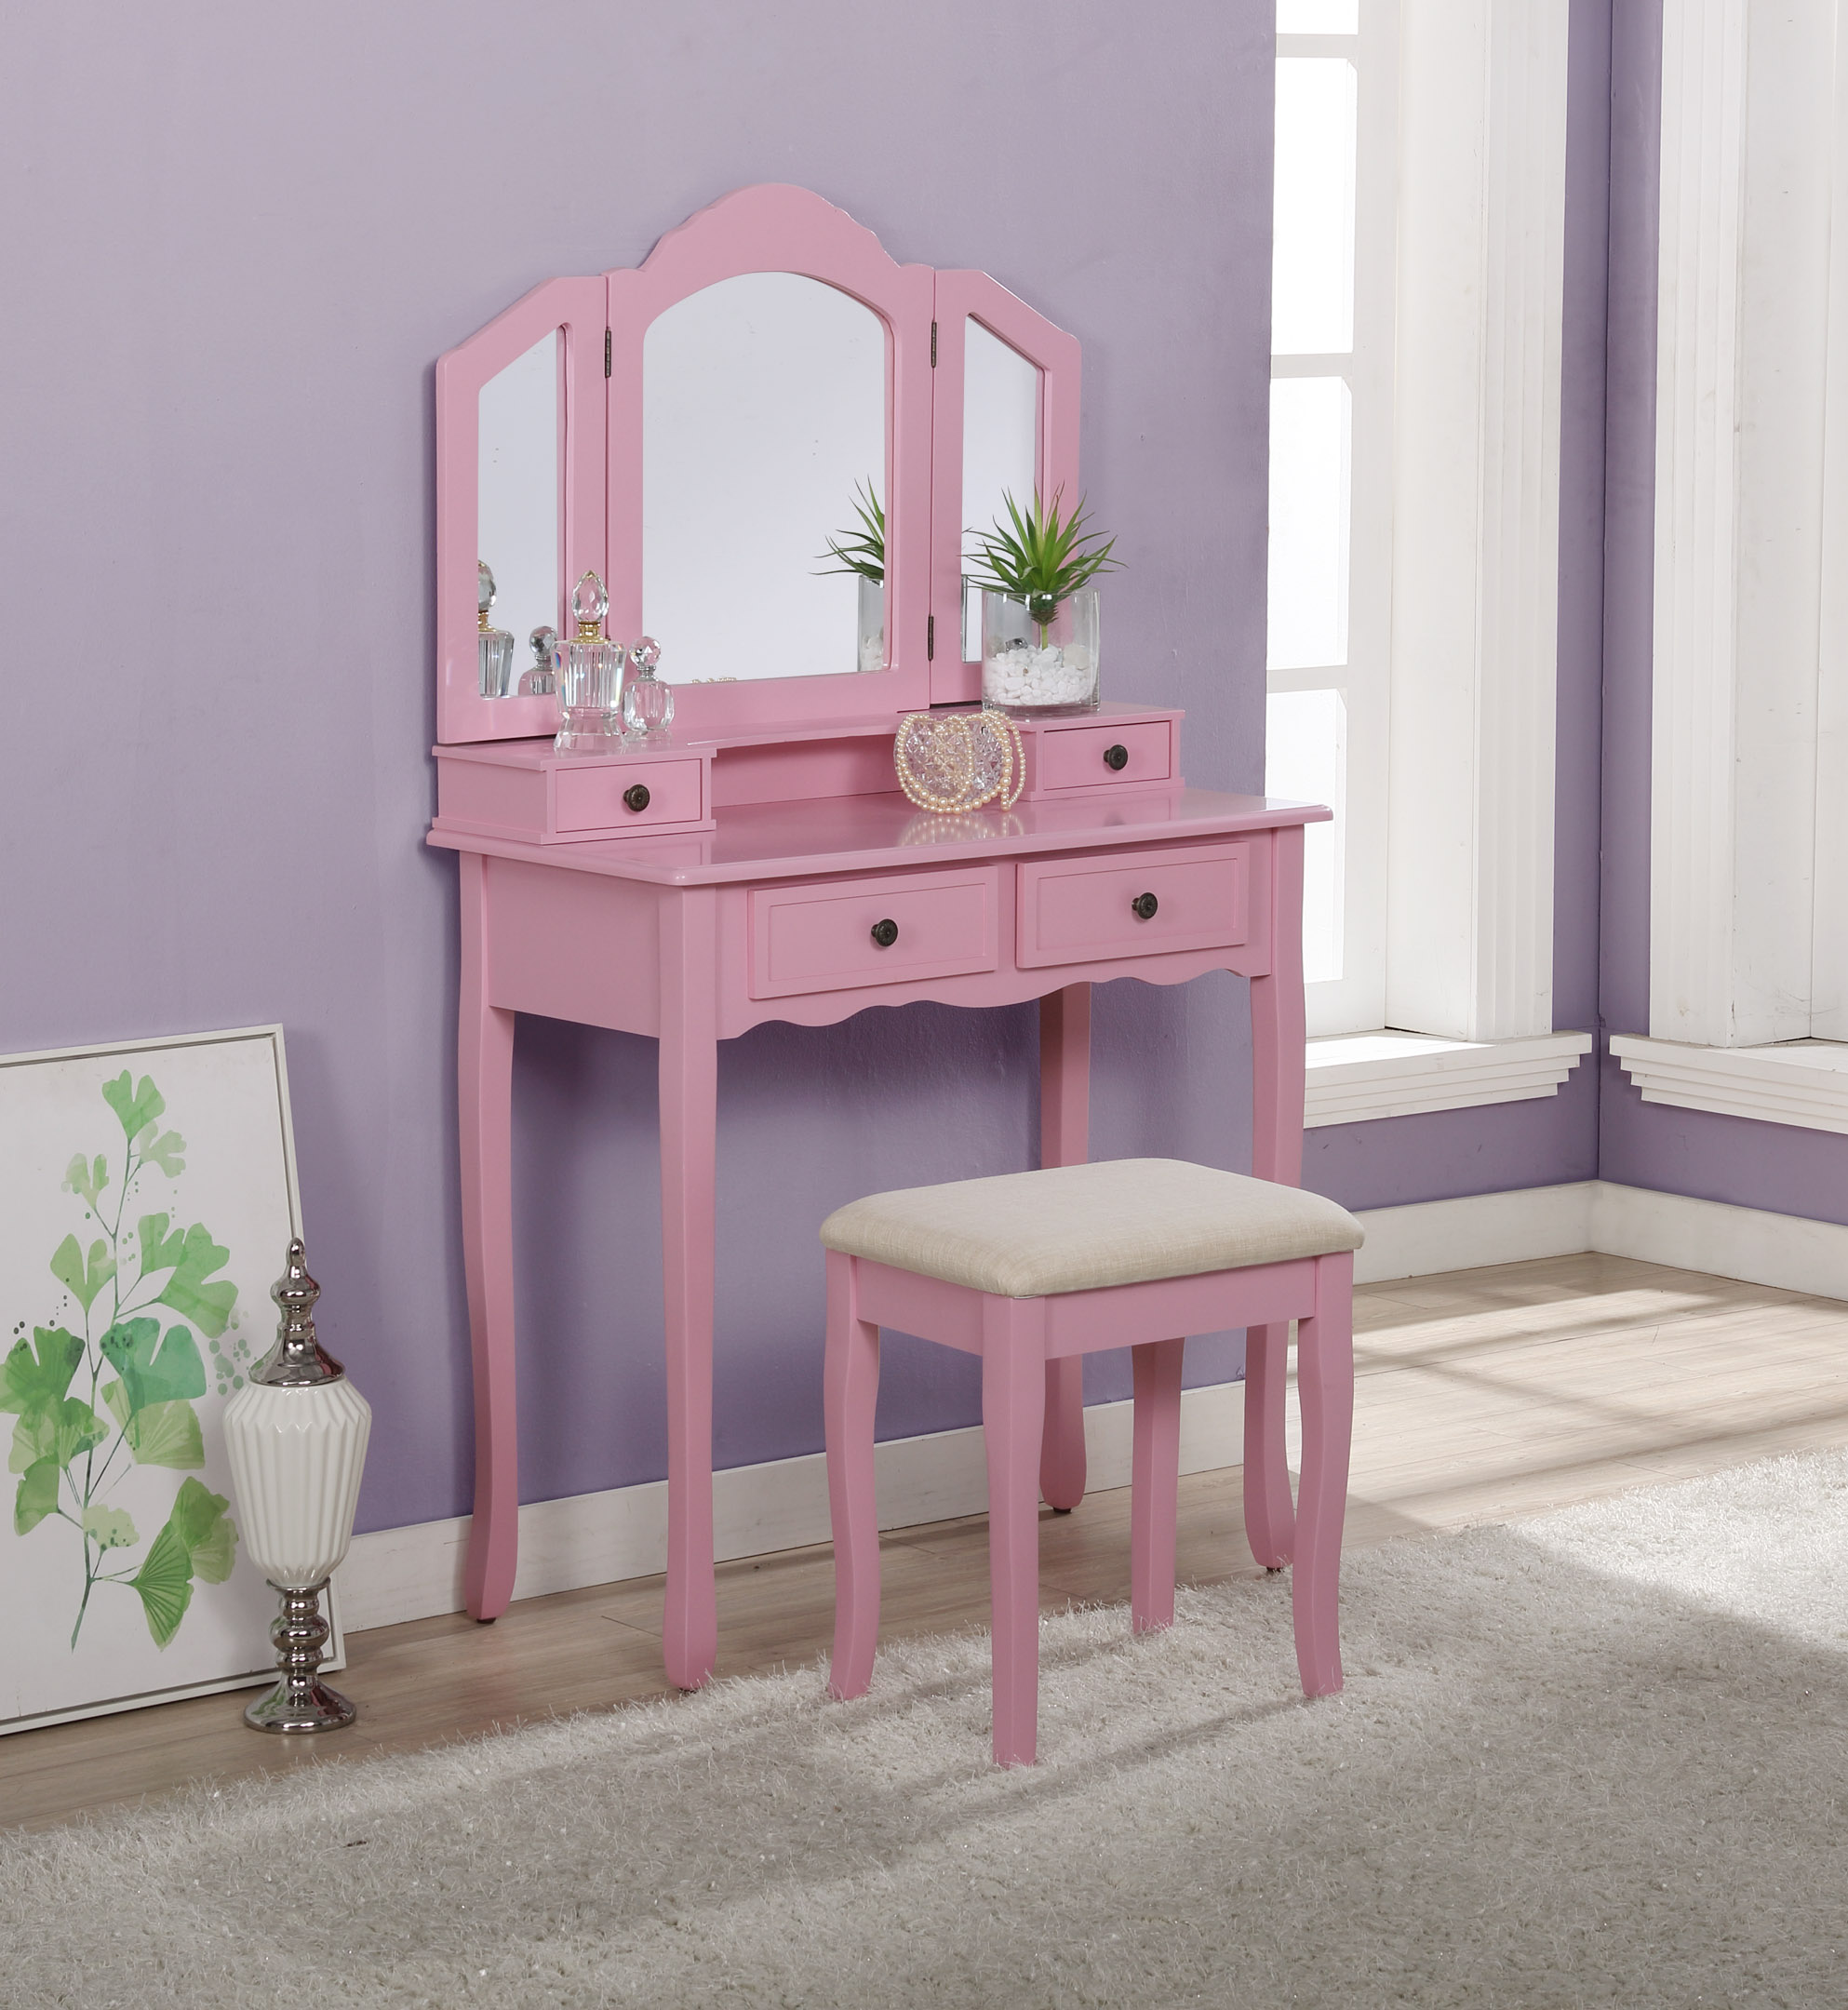 Roundhill Furniture Sanlo Wooden Vanity Make Up Table And Stool Set Pink Walmart Com Walmart Com